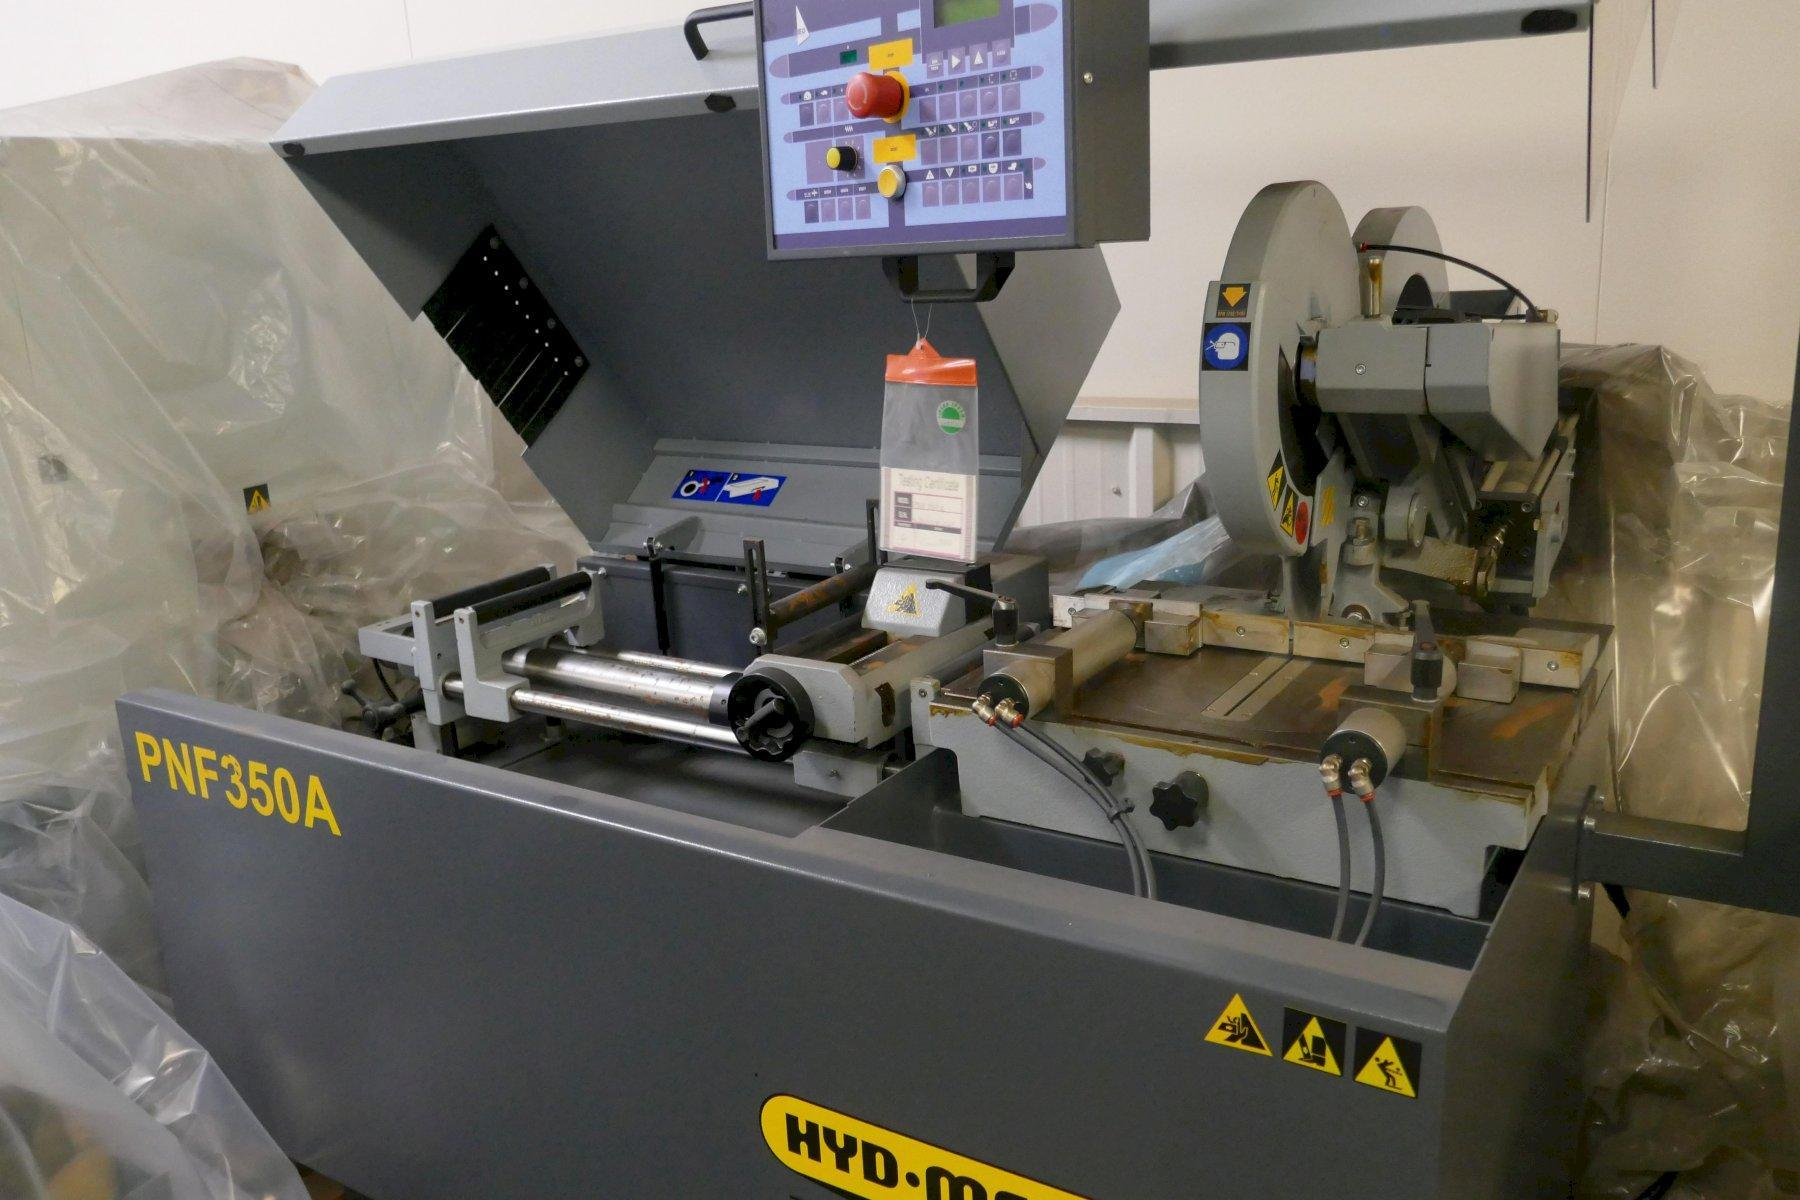 DEMO HYD-MECH MODEL PNF 350A FULLY AUTOMATIC NON-FERROUS CIRCULAR SAW (ALUMINUM), Stock # 10767,